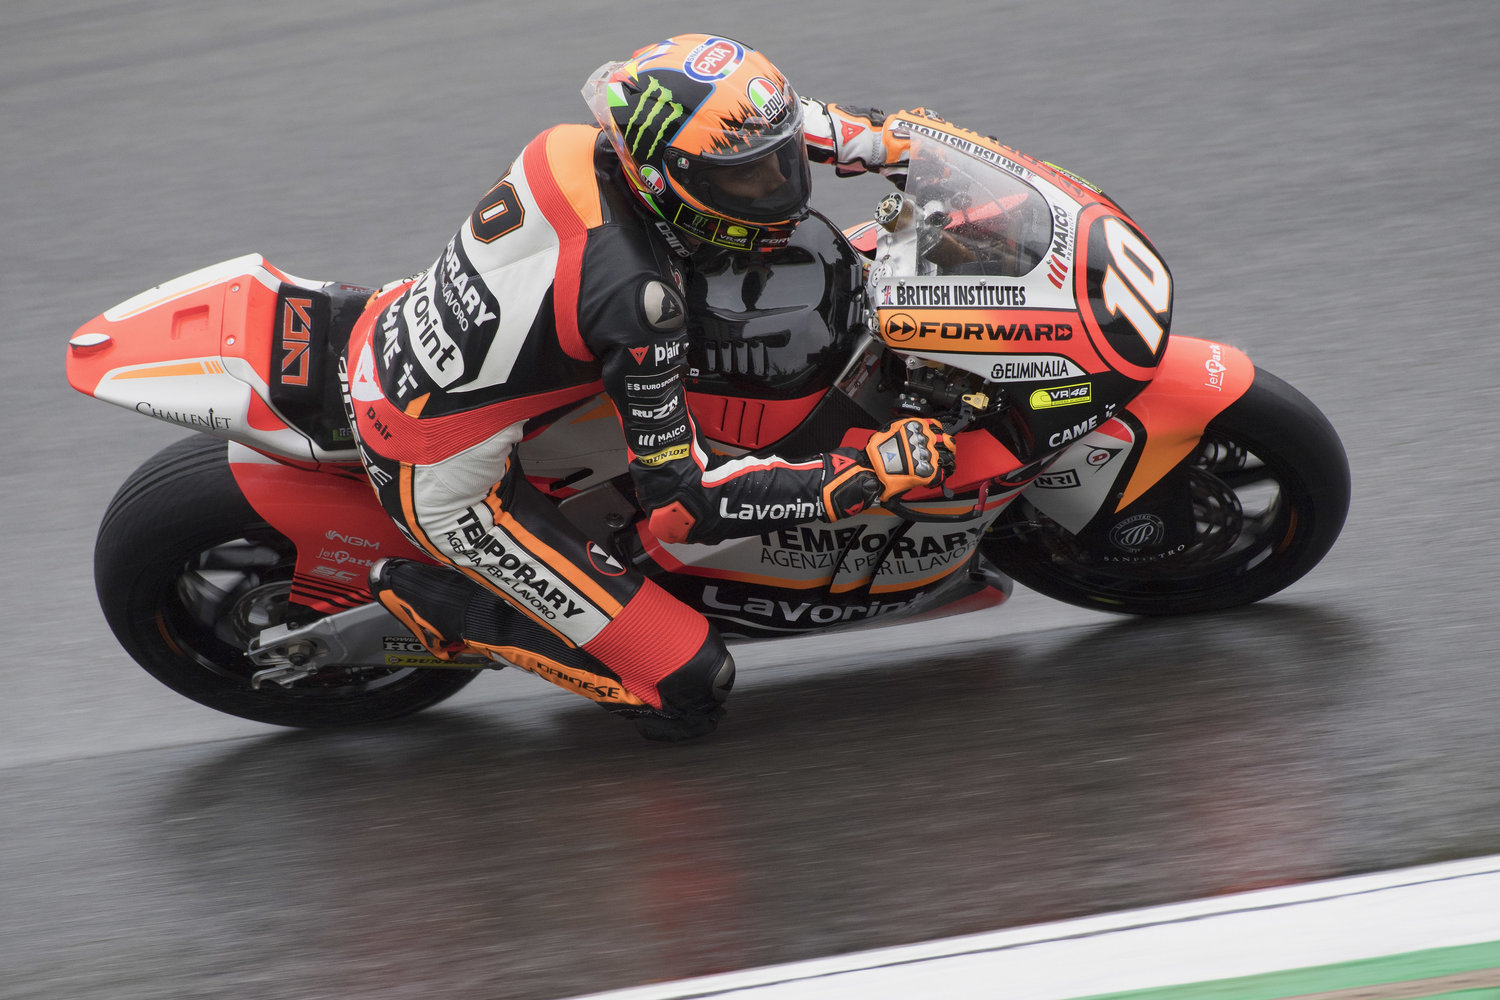 Positive opening in mixed conditions for Marini and Baldassarri in Brno